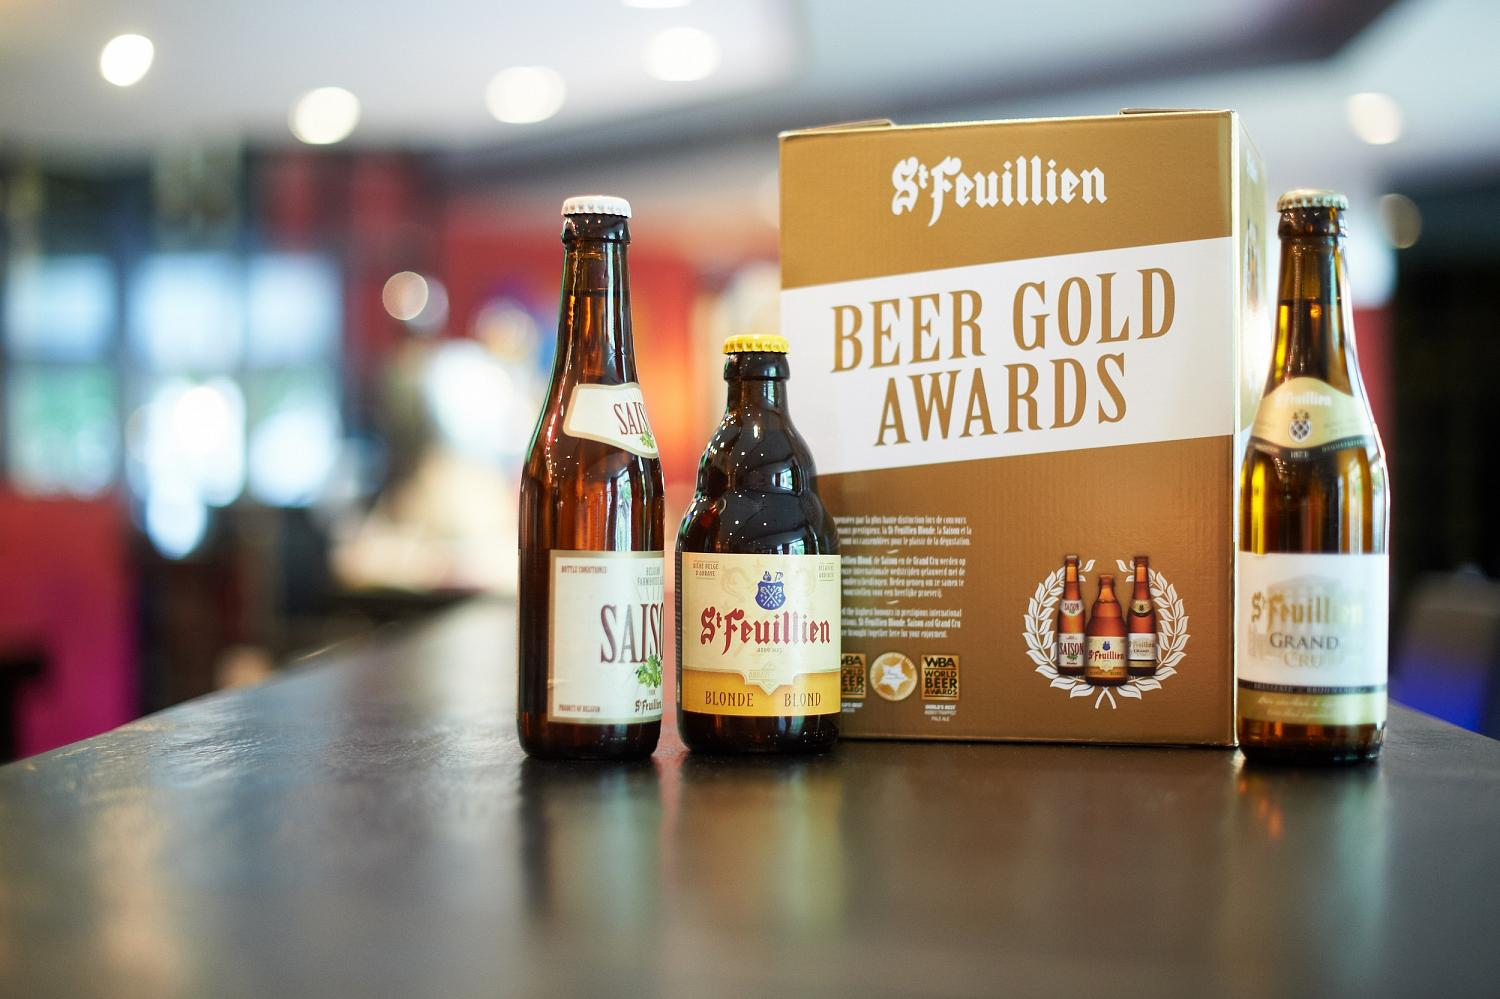 GOLDEN BEER PACKAGE